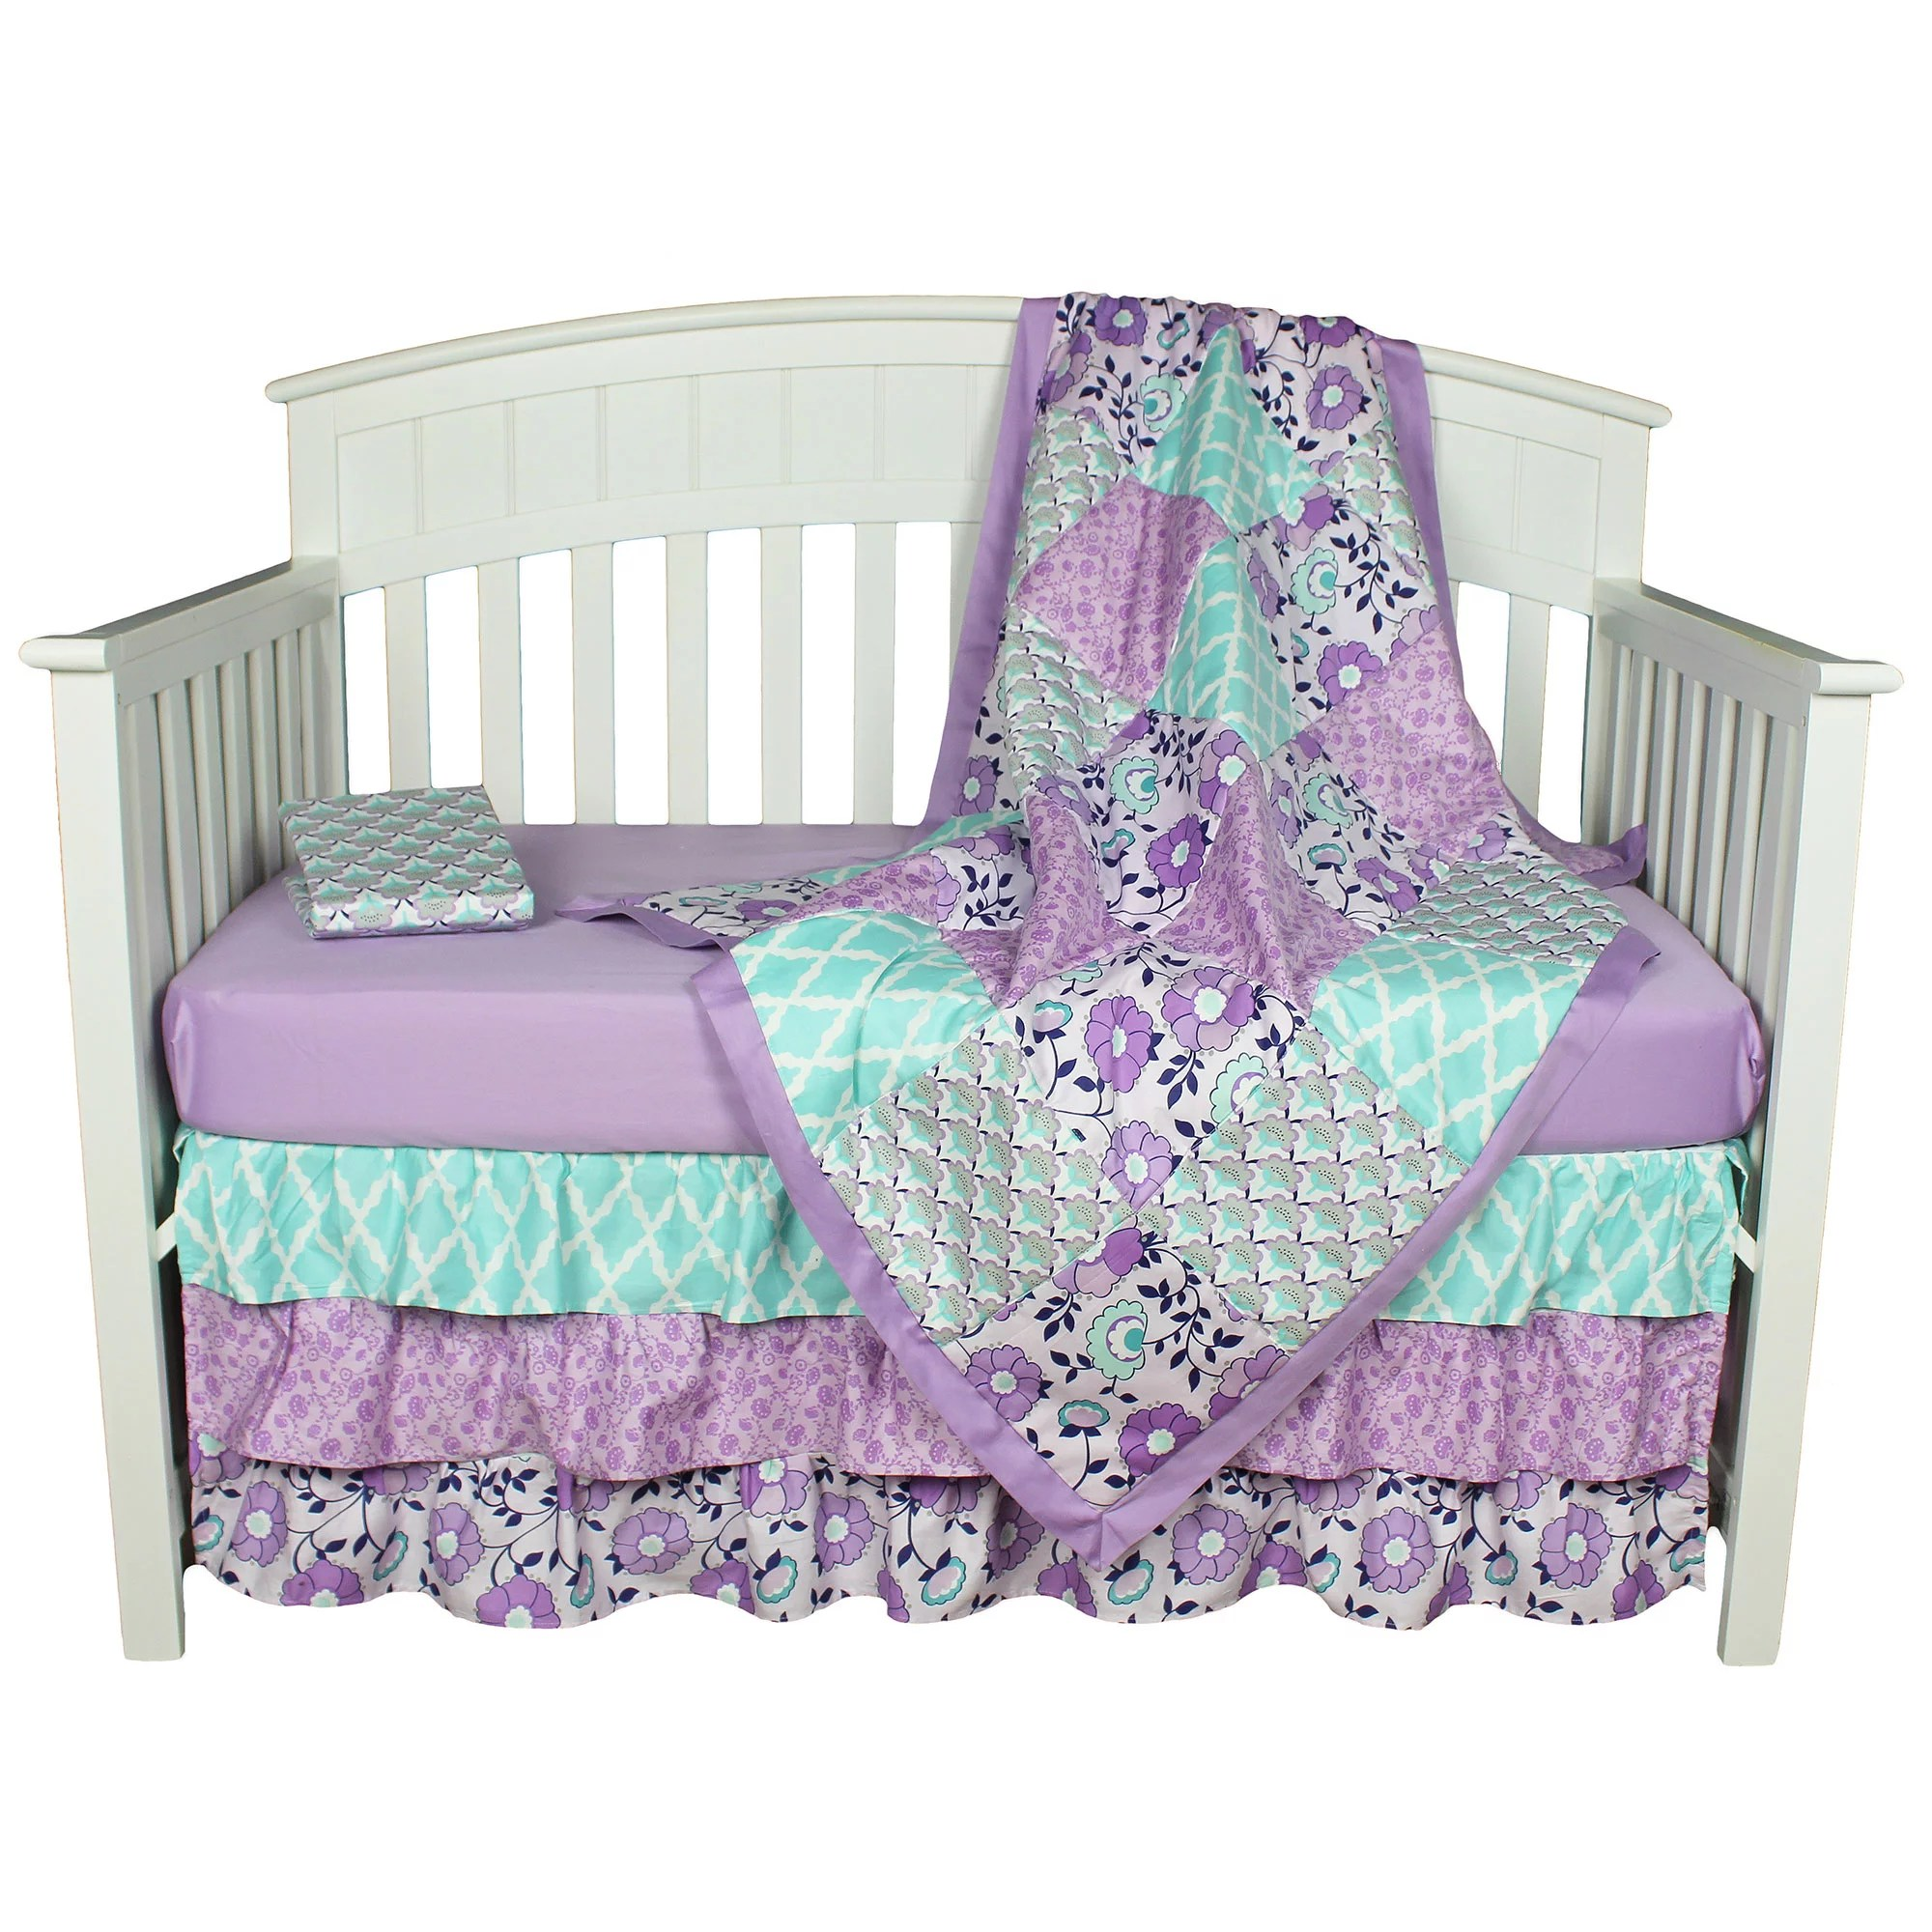 Full Crib Bedding Sets The Peanut Shell Baby Girl Crib Bedding Set Purple Floral Design Zoe 4 Piece Set Includes Coverlet Dust Ruffle And Two Fitted Sheets